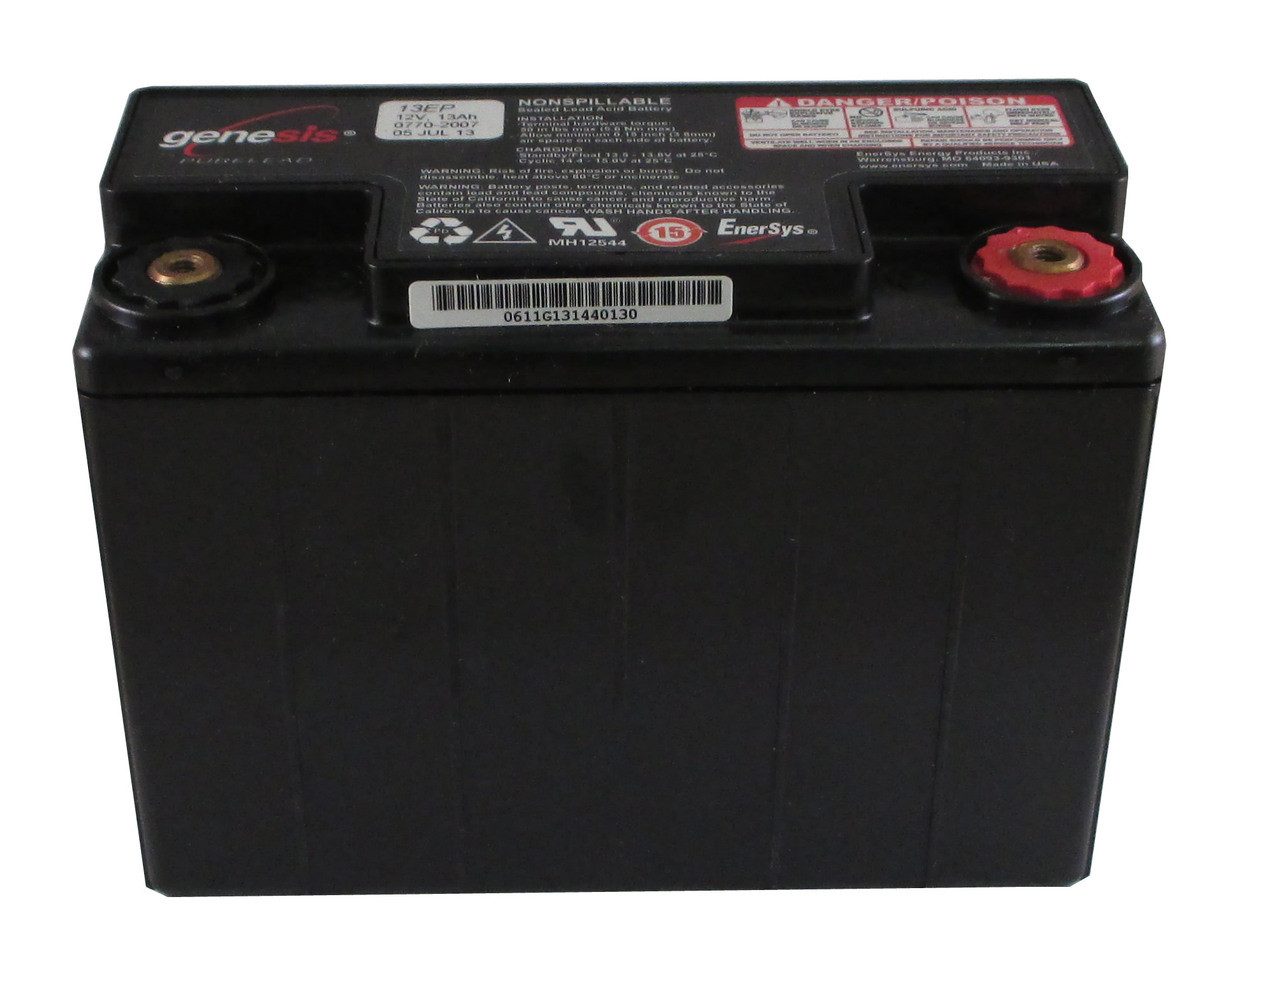 Enersys Genesis G13EP Battery - 12V 13.0Ah Sealed Lead Rechargeable